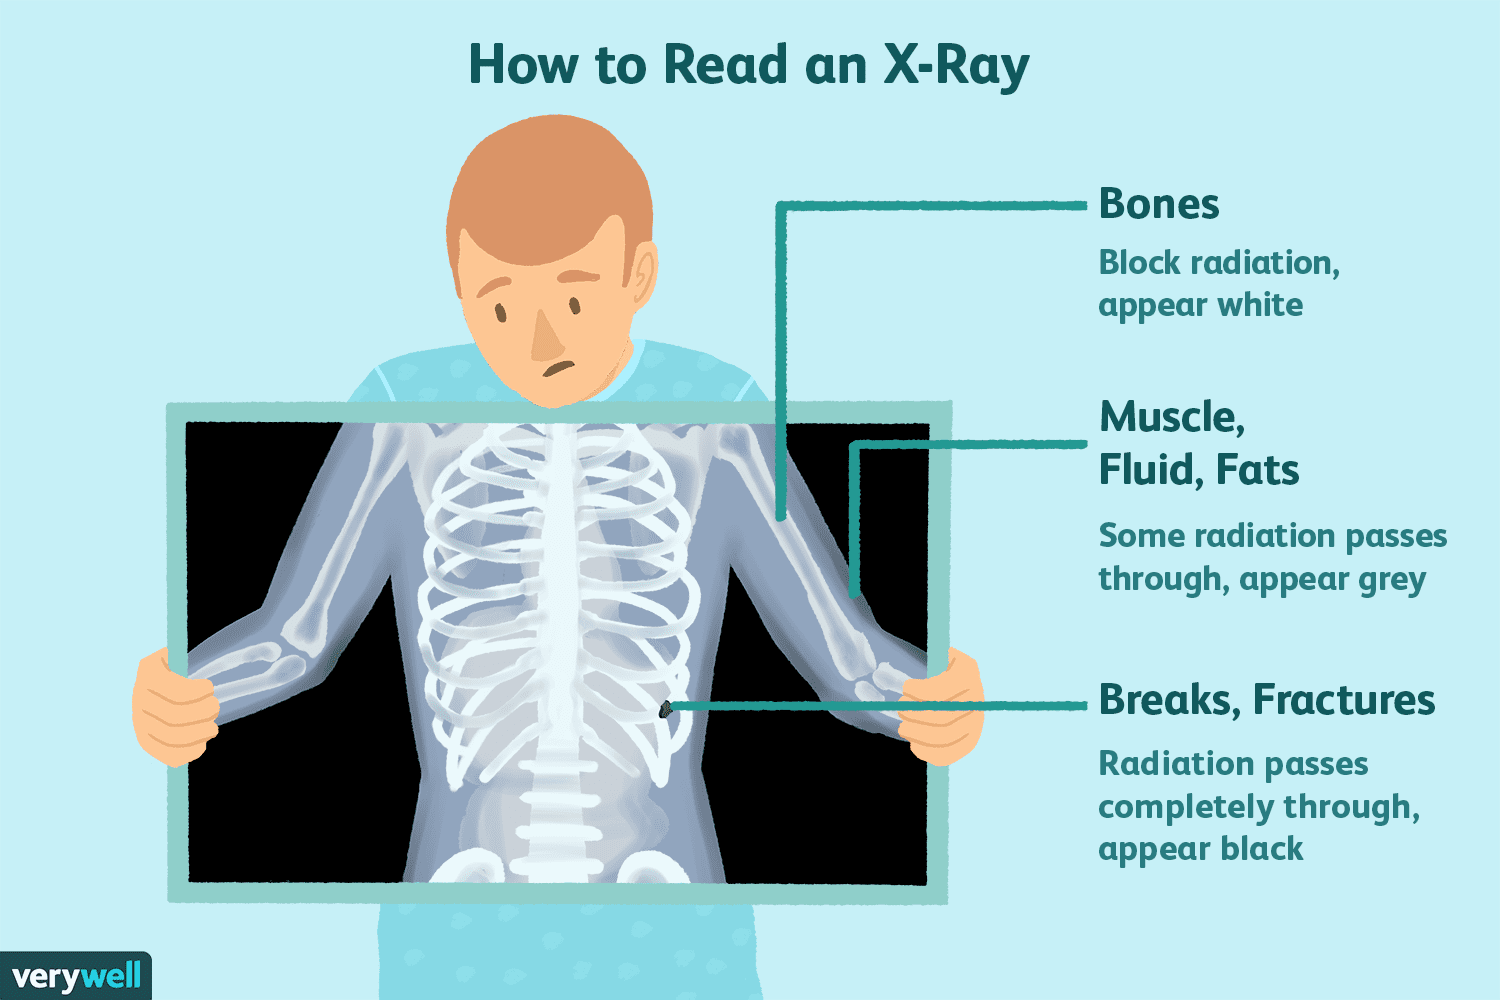 How to Read an X-Ray